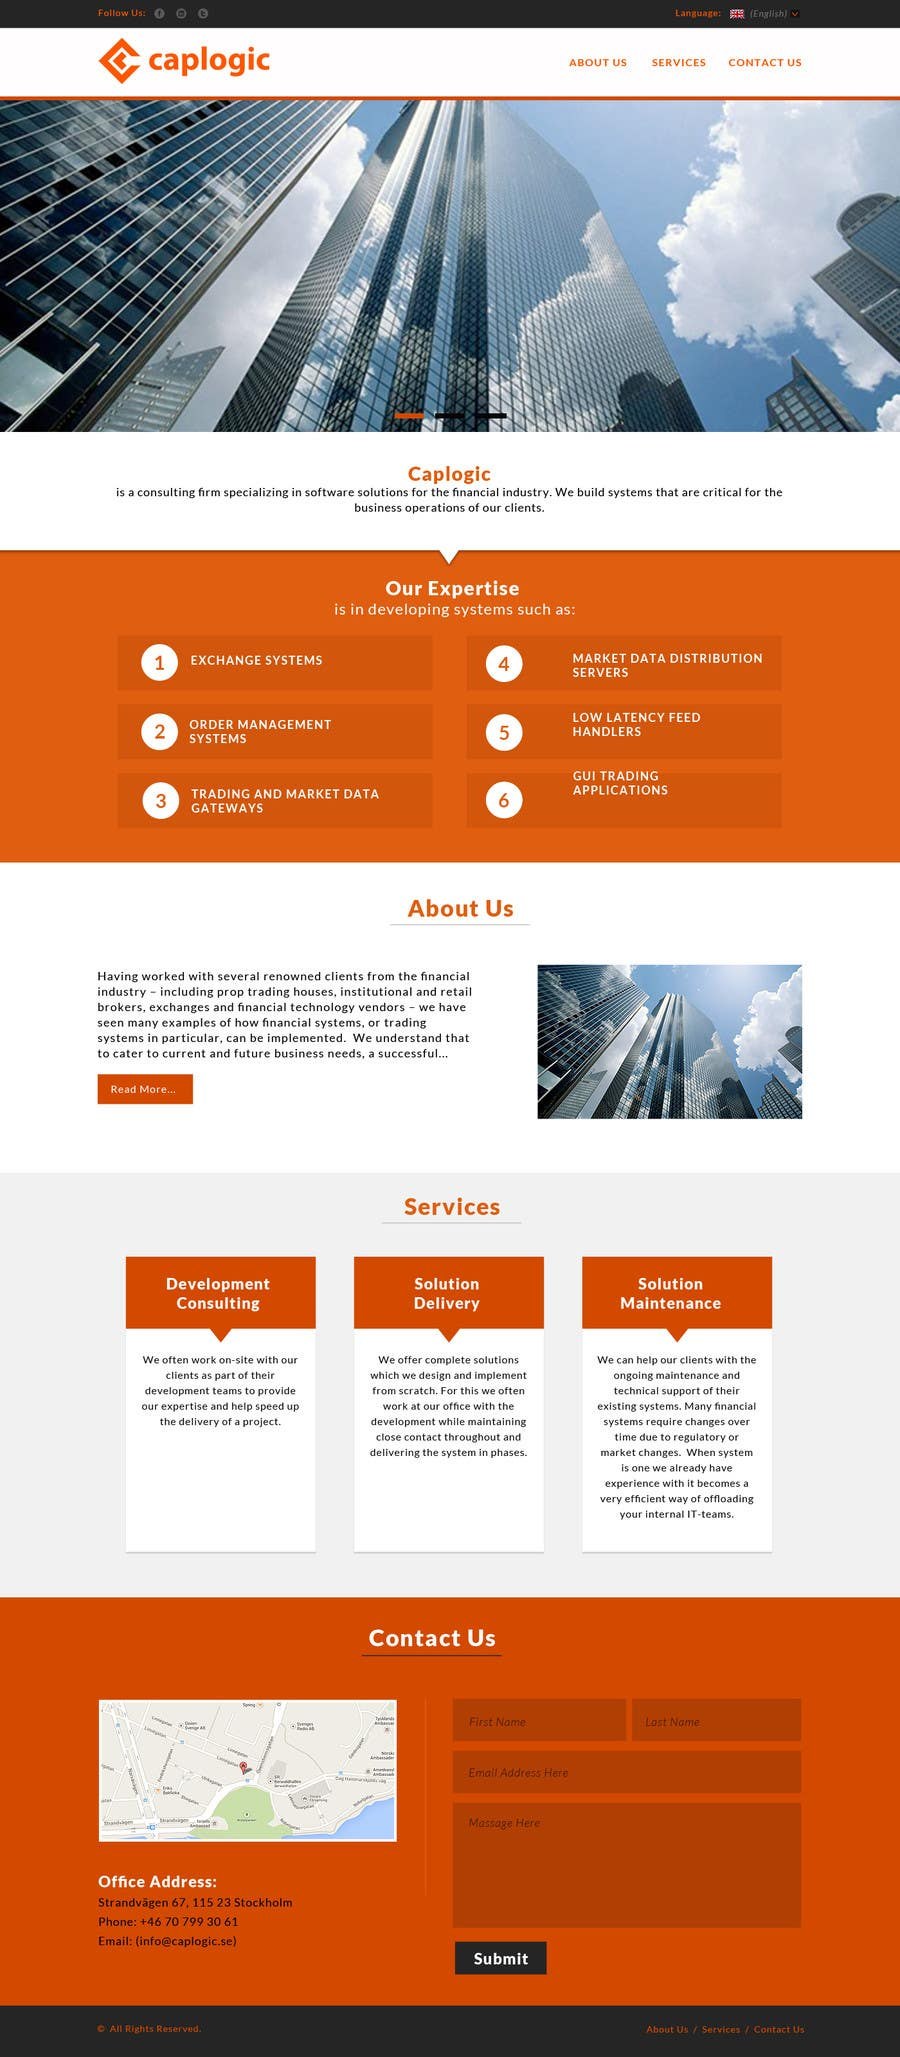 Bài tham dự cuộc thi #10 cho Design a Website Mockup (Logo, Textual Content and Structure is Available)